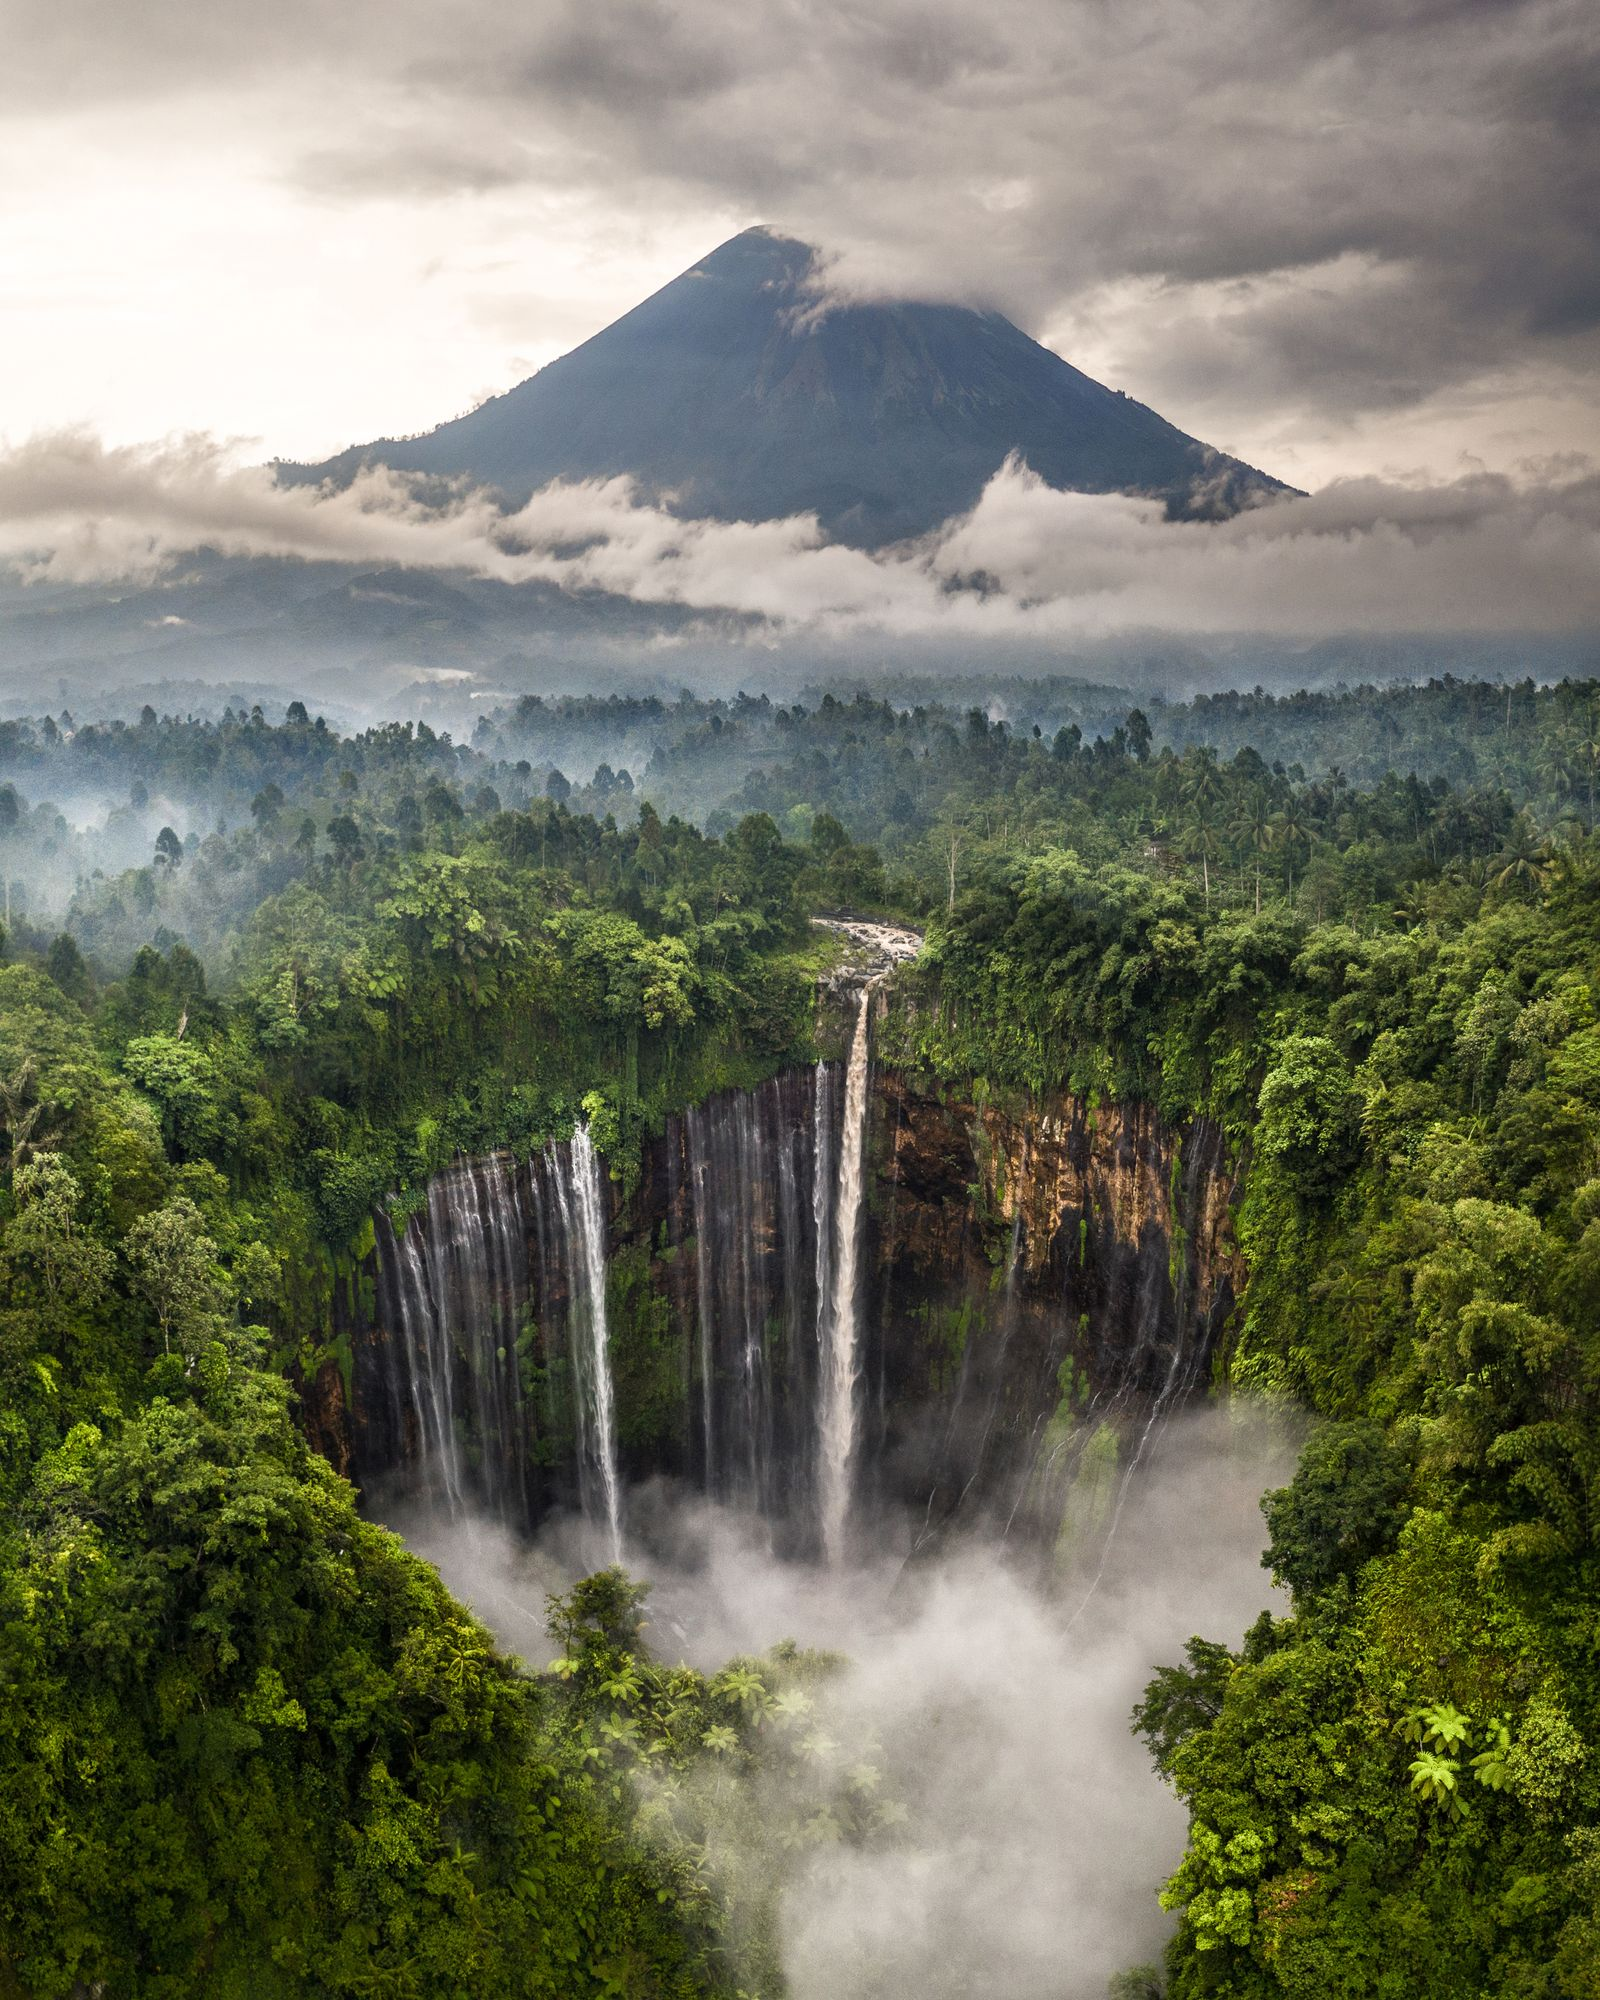 Tumpack Sewu Waterfall